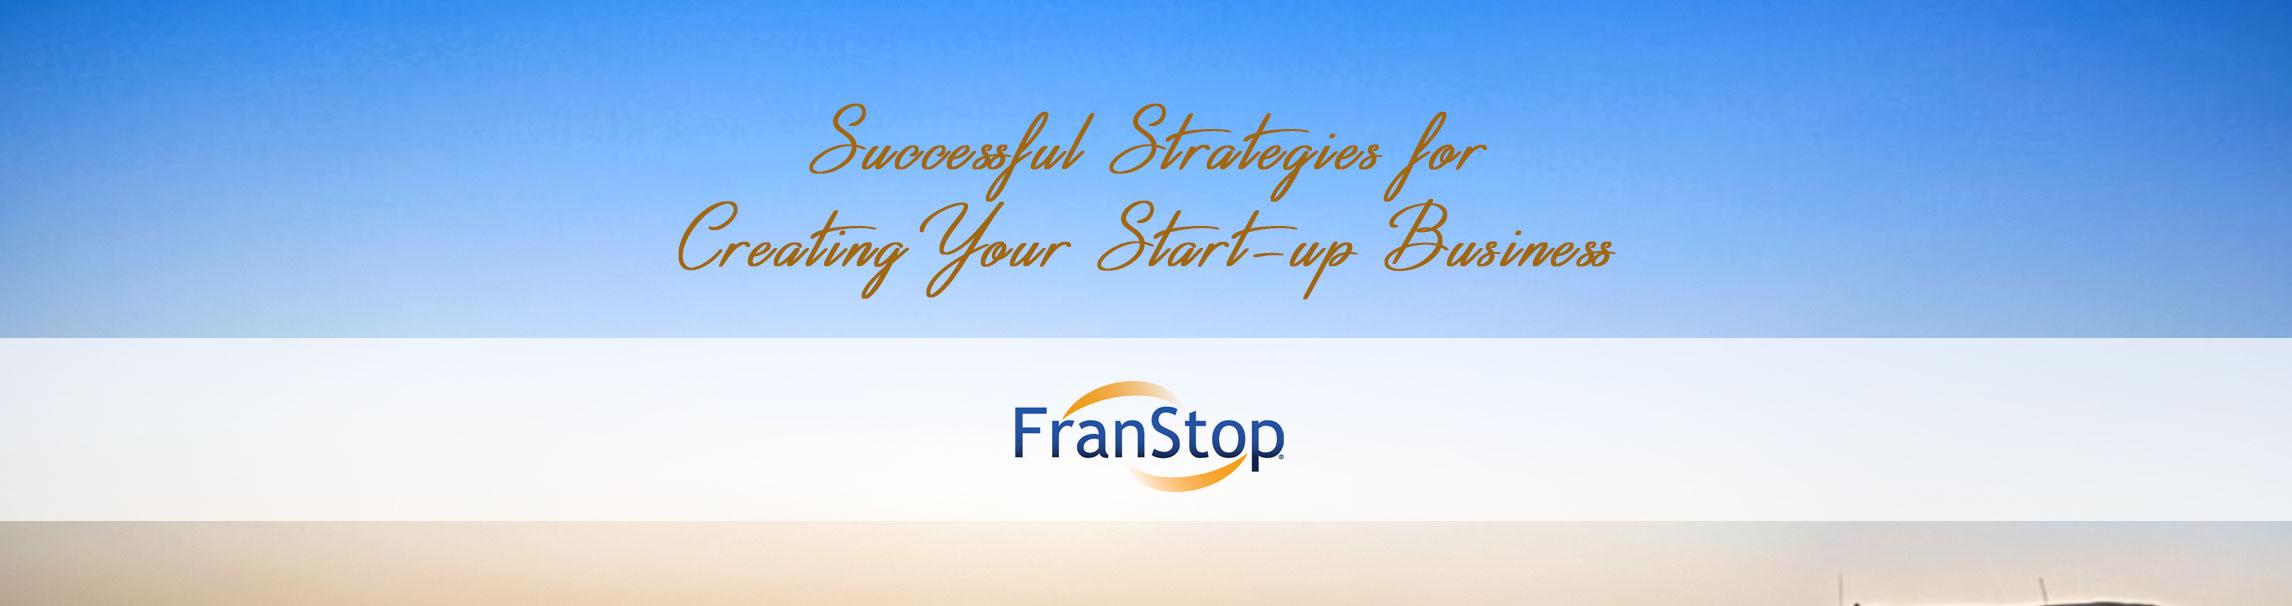 FranStop_Franchise_Business_Buy_Sell_For_Sale